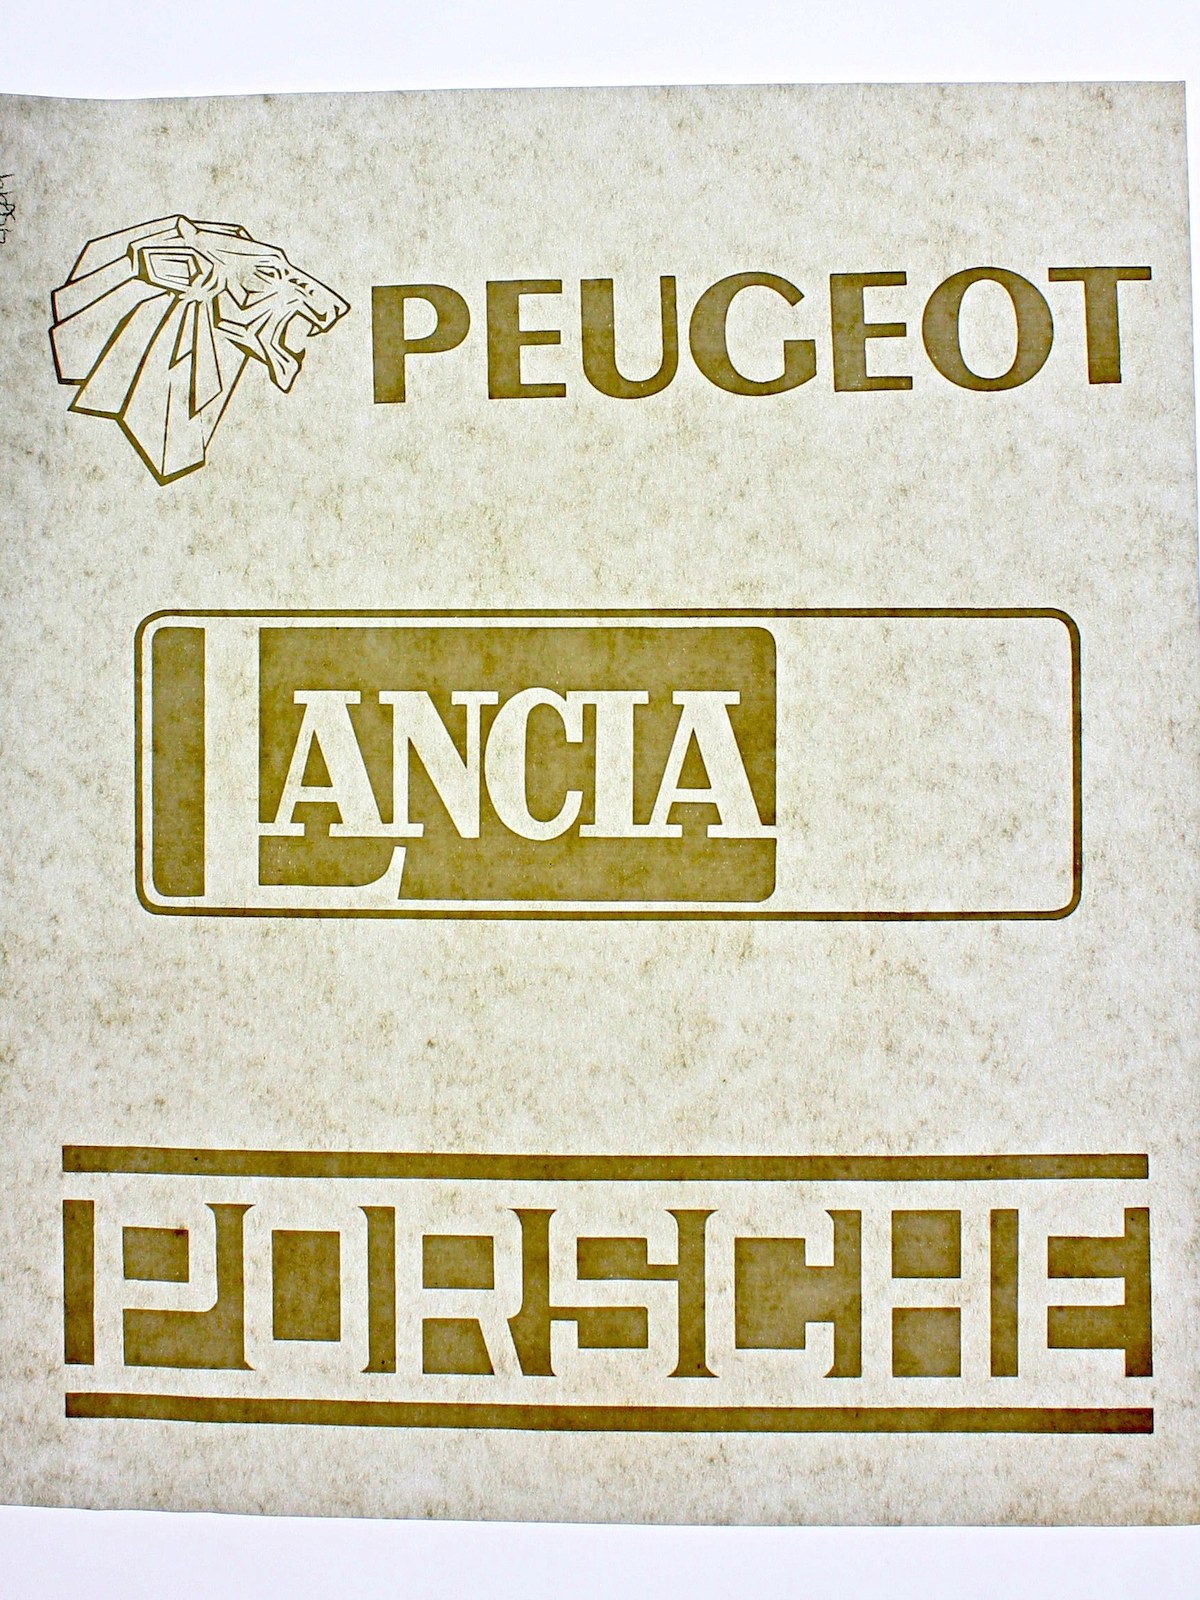 80s Iron On Transfer For T Shirts T Shirt Iron Ons 80s Peugeot